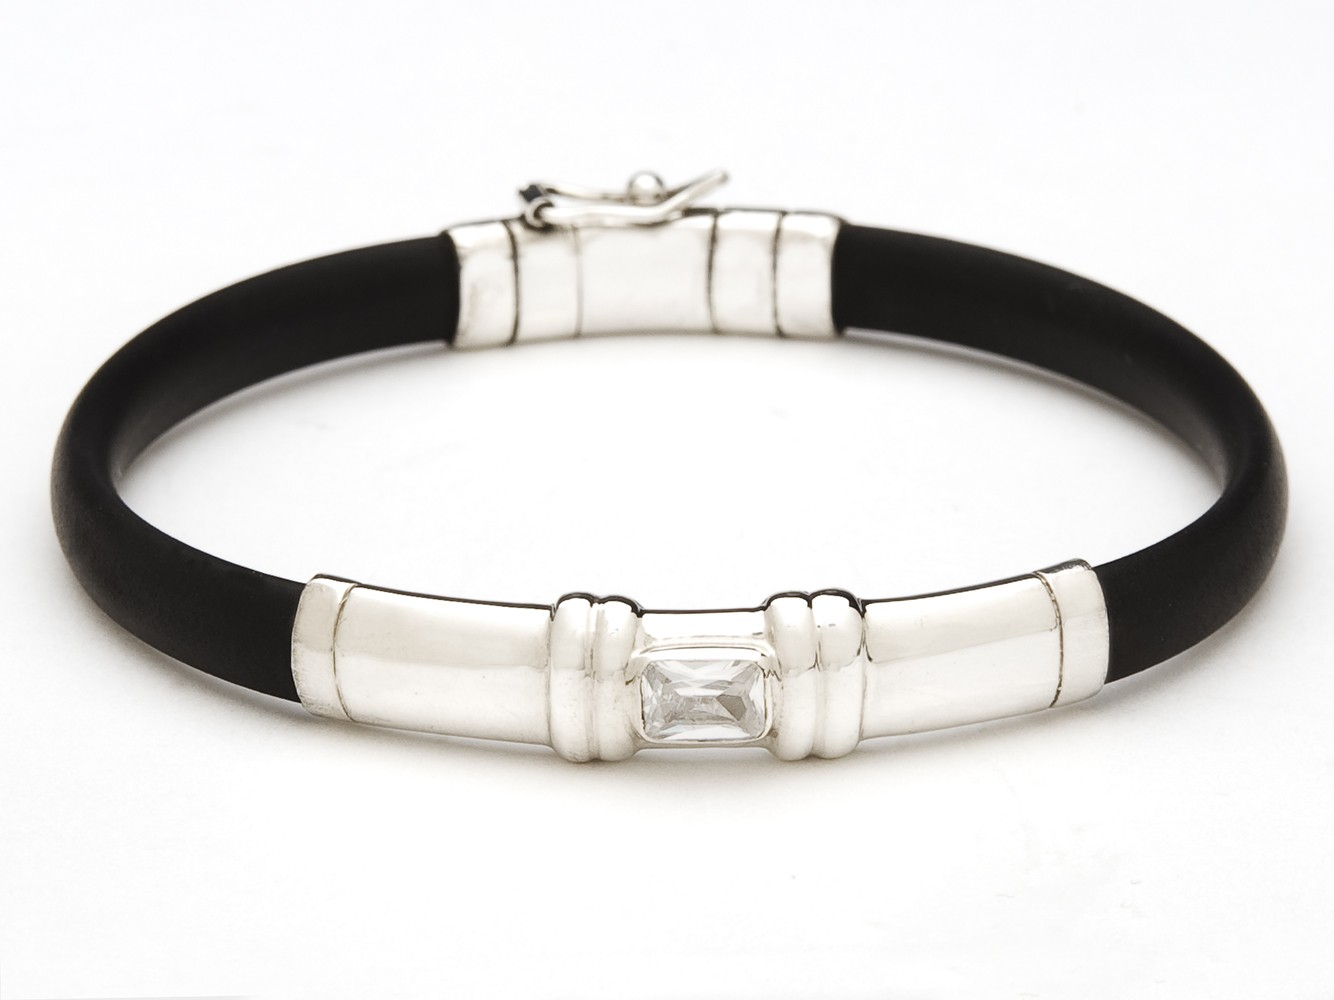 Black Rubber, Sterling Silver and Cubic Zirconia Bracelet